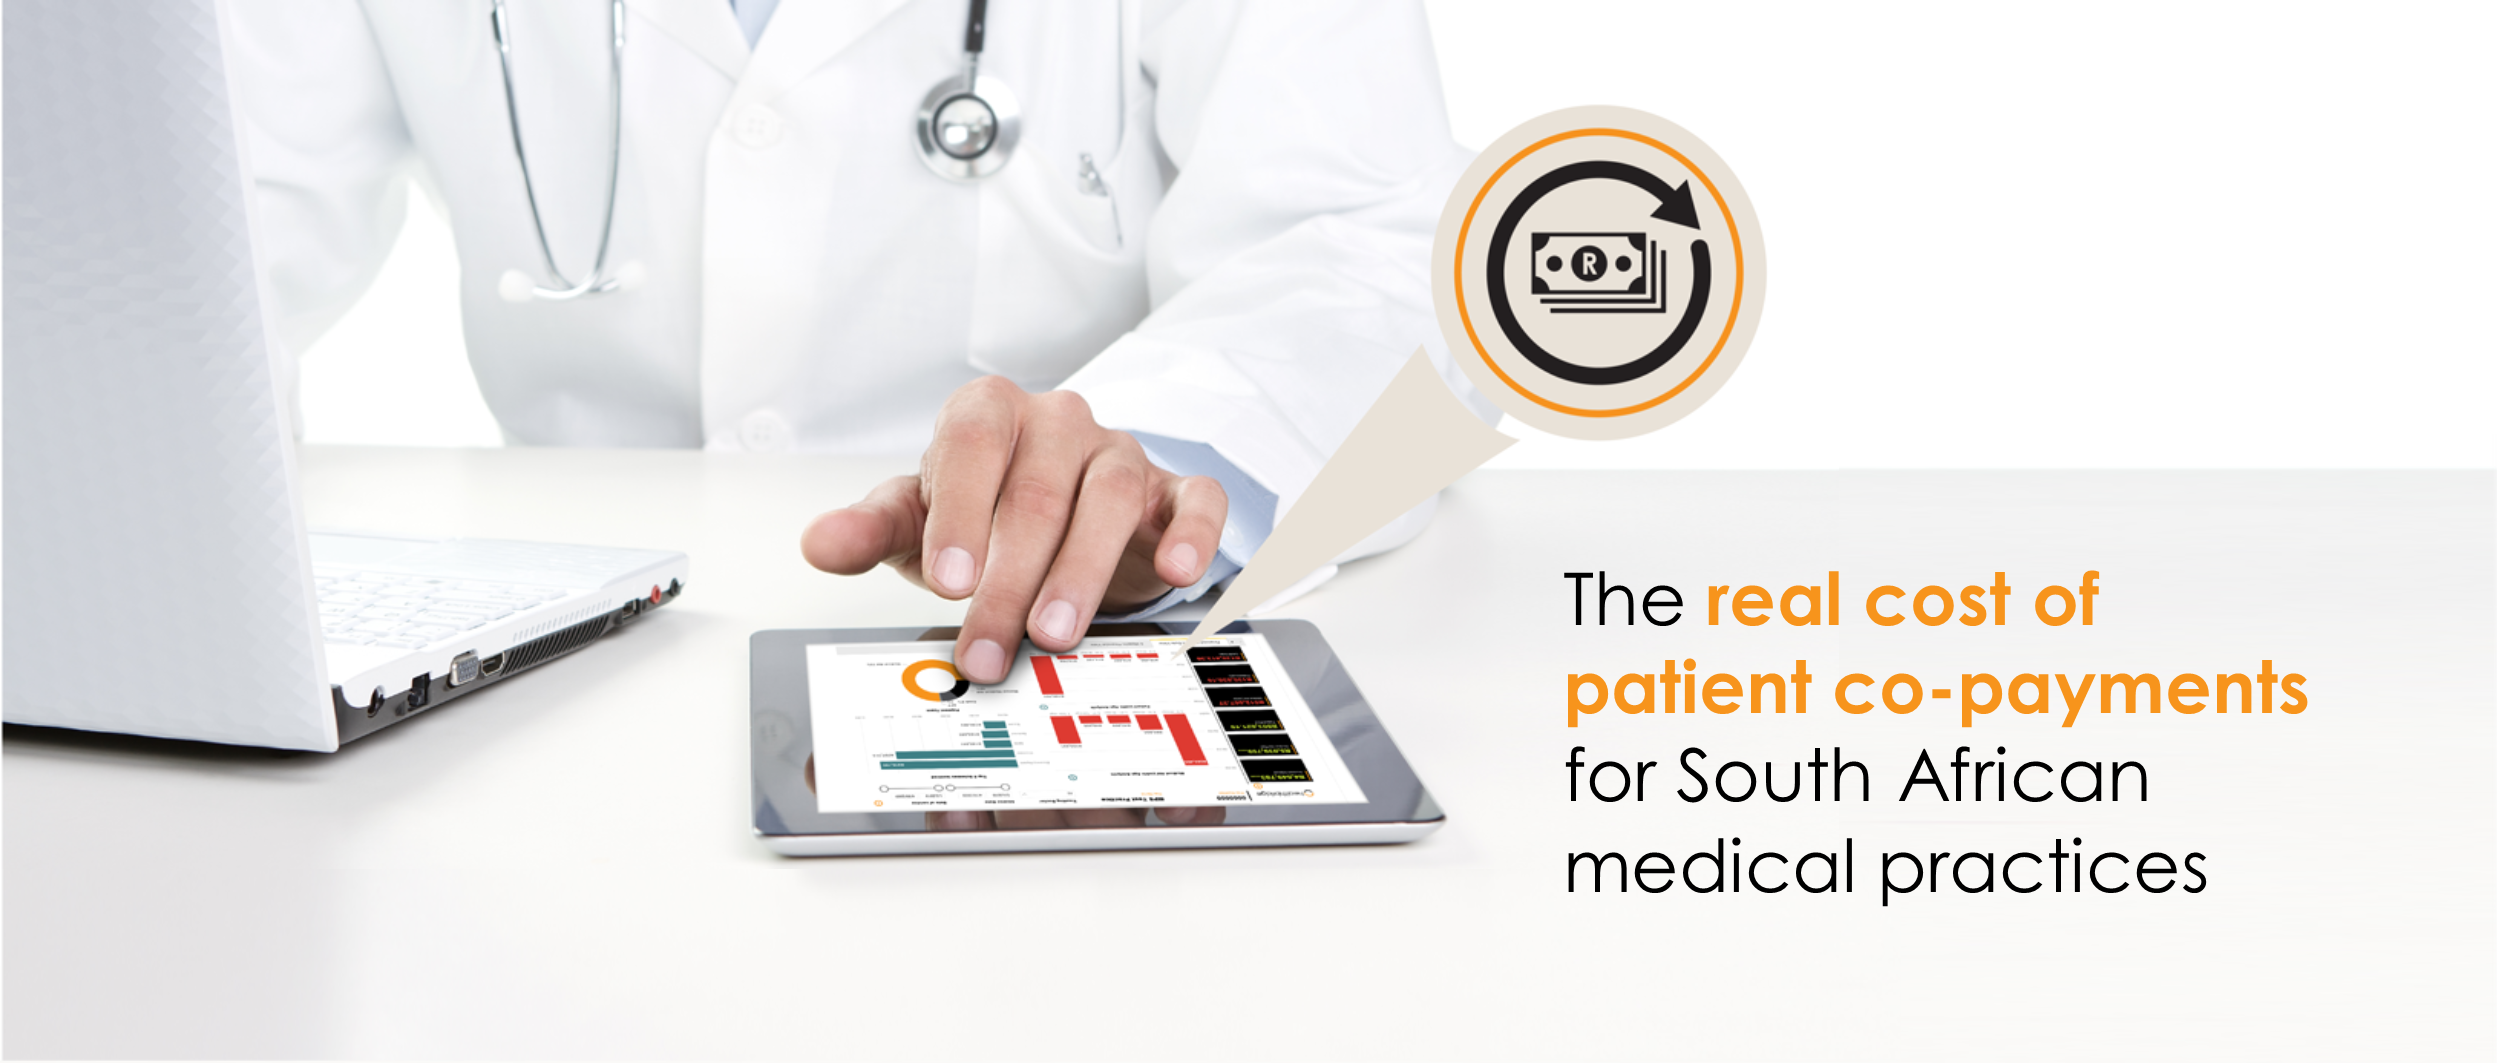 The real cost of patient co-payments for SA medical practices